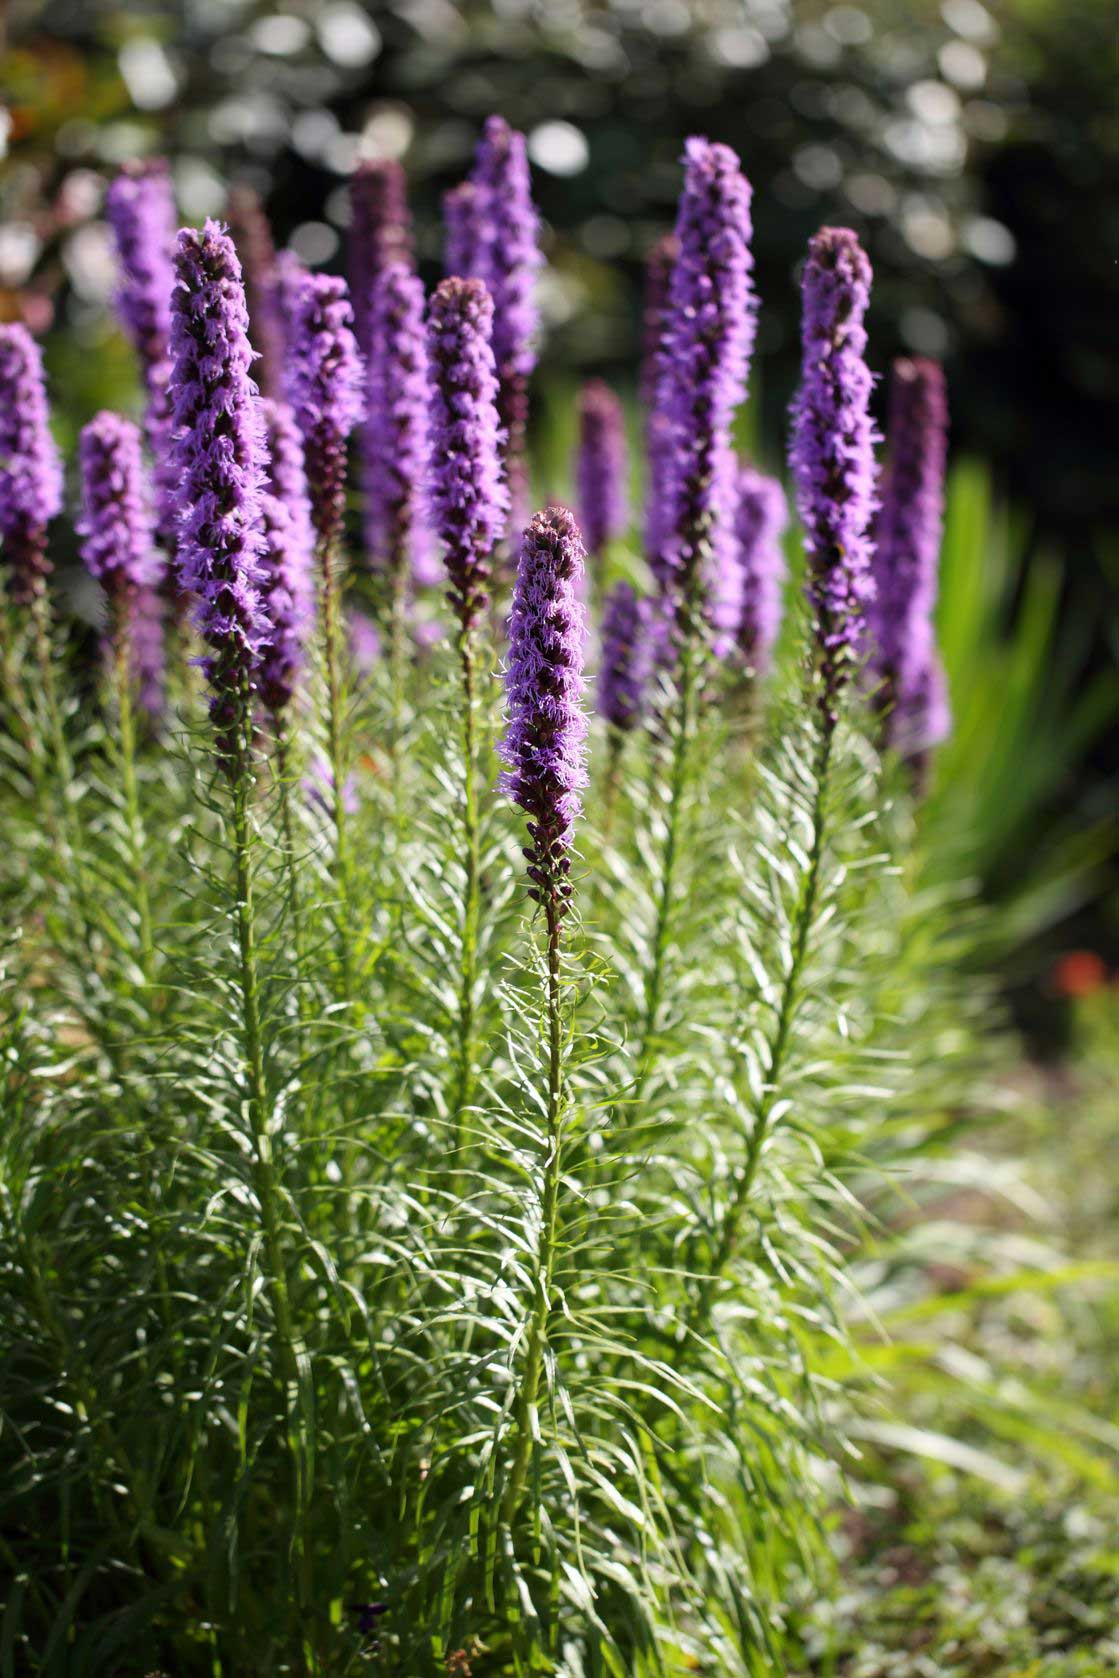 Liatris is a sun loving perennial with nice vertical flowers.